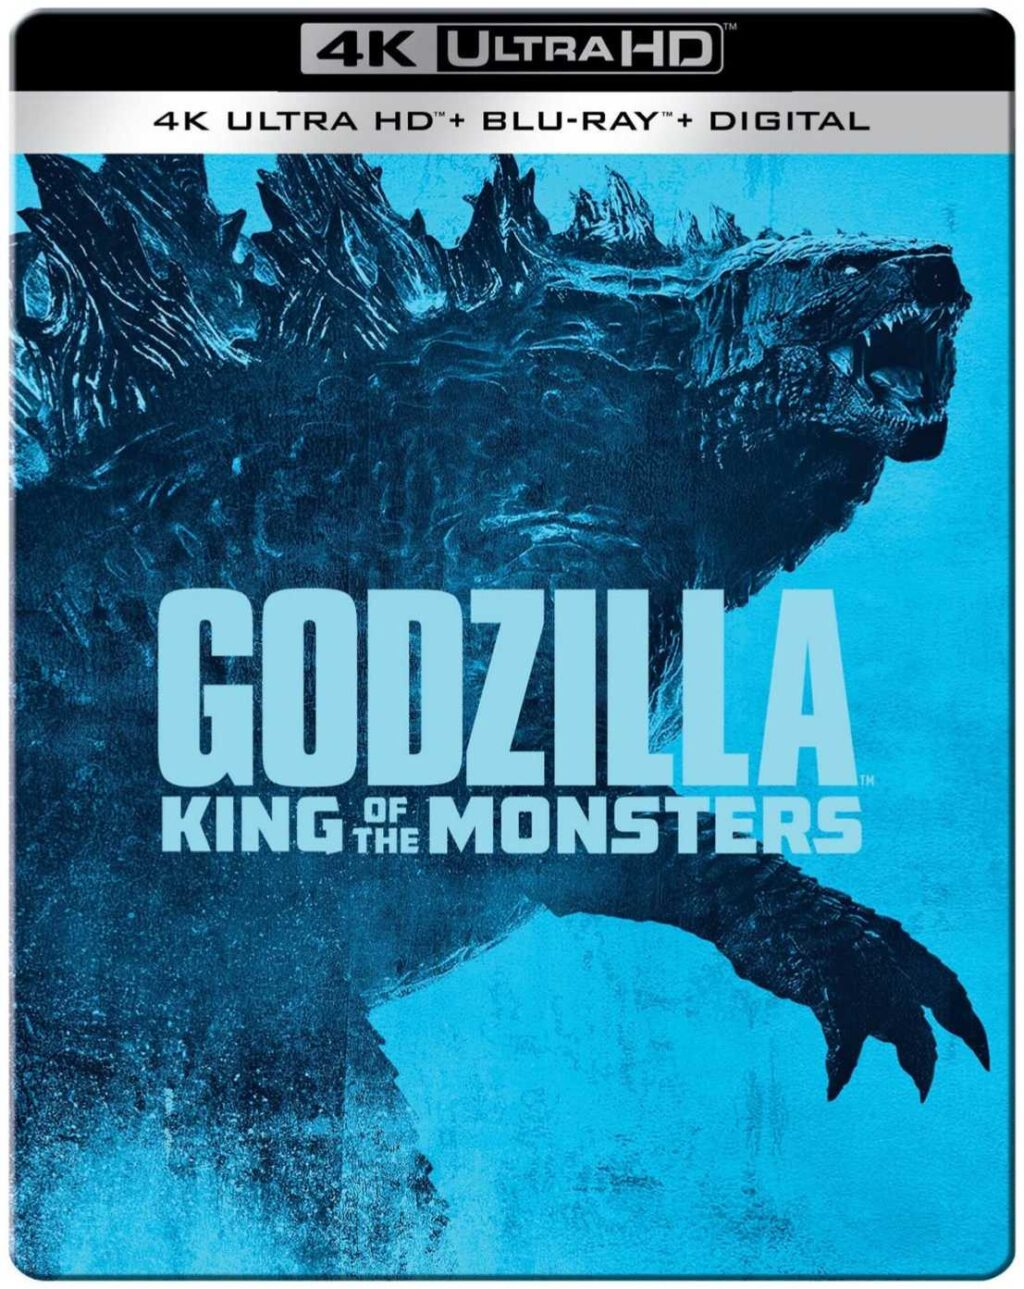 Godzilla King of the Monsters Steel 1024x1289 - KING OF THE MONSTERS Director Wants to Take Humans Out of the Equation in GODZILLA B.C.